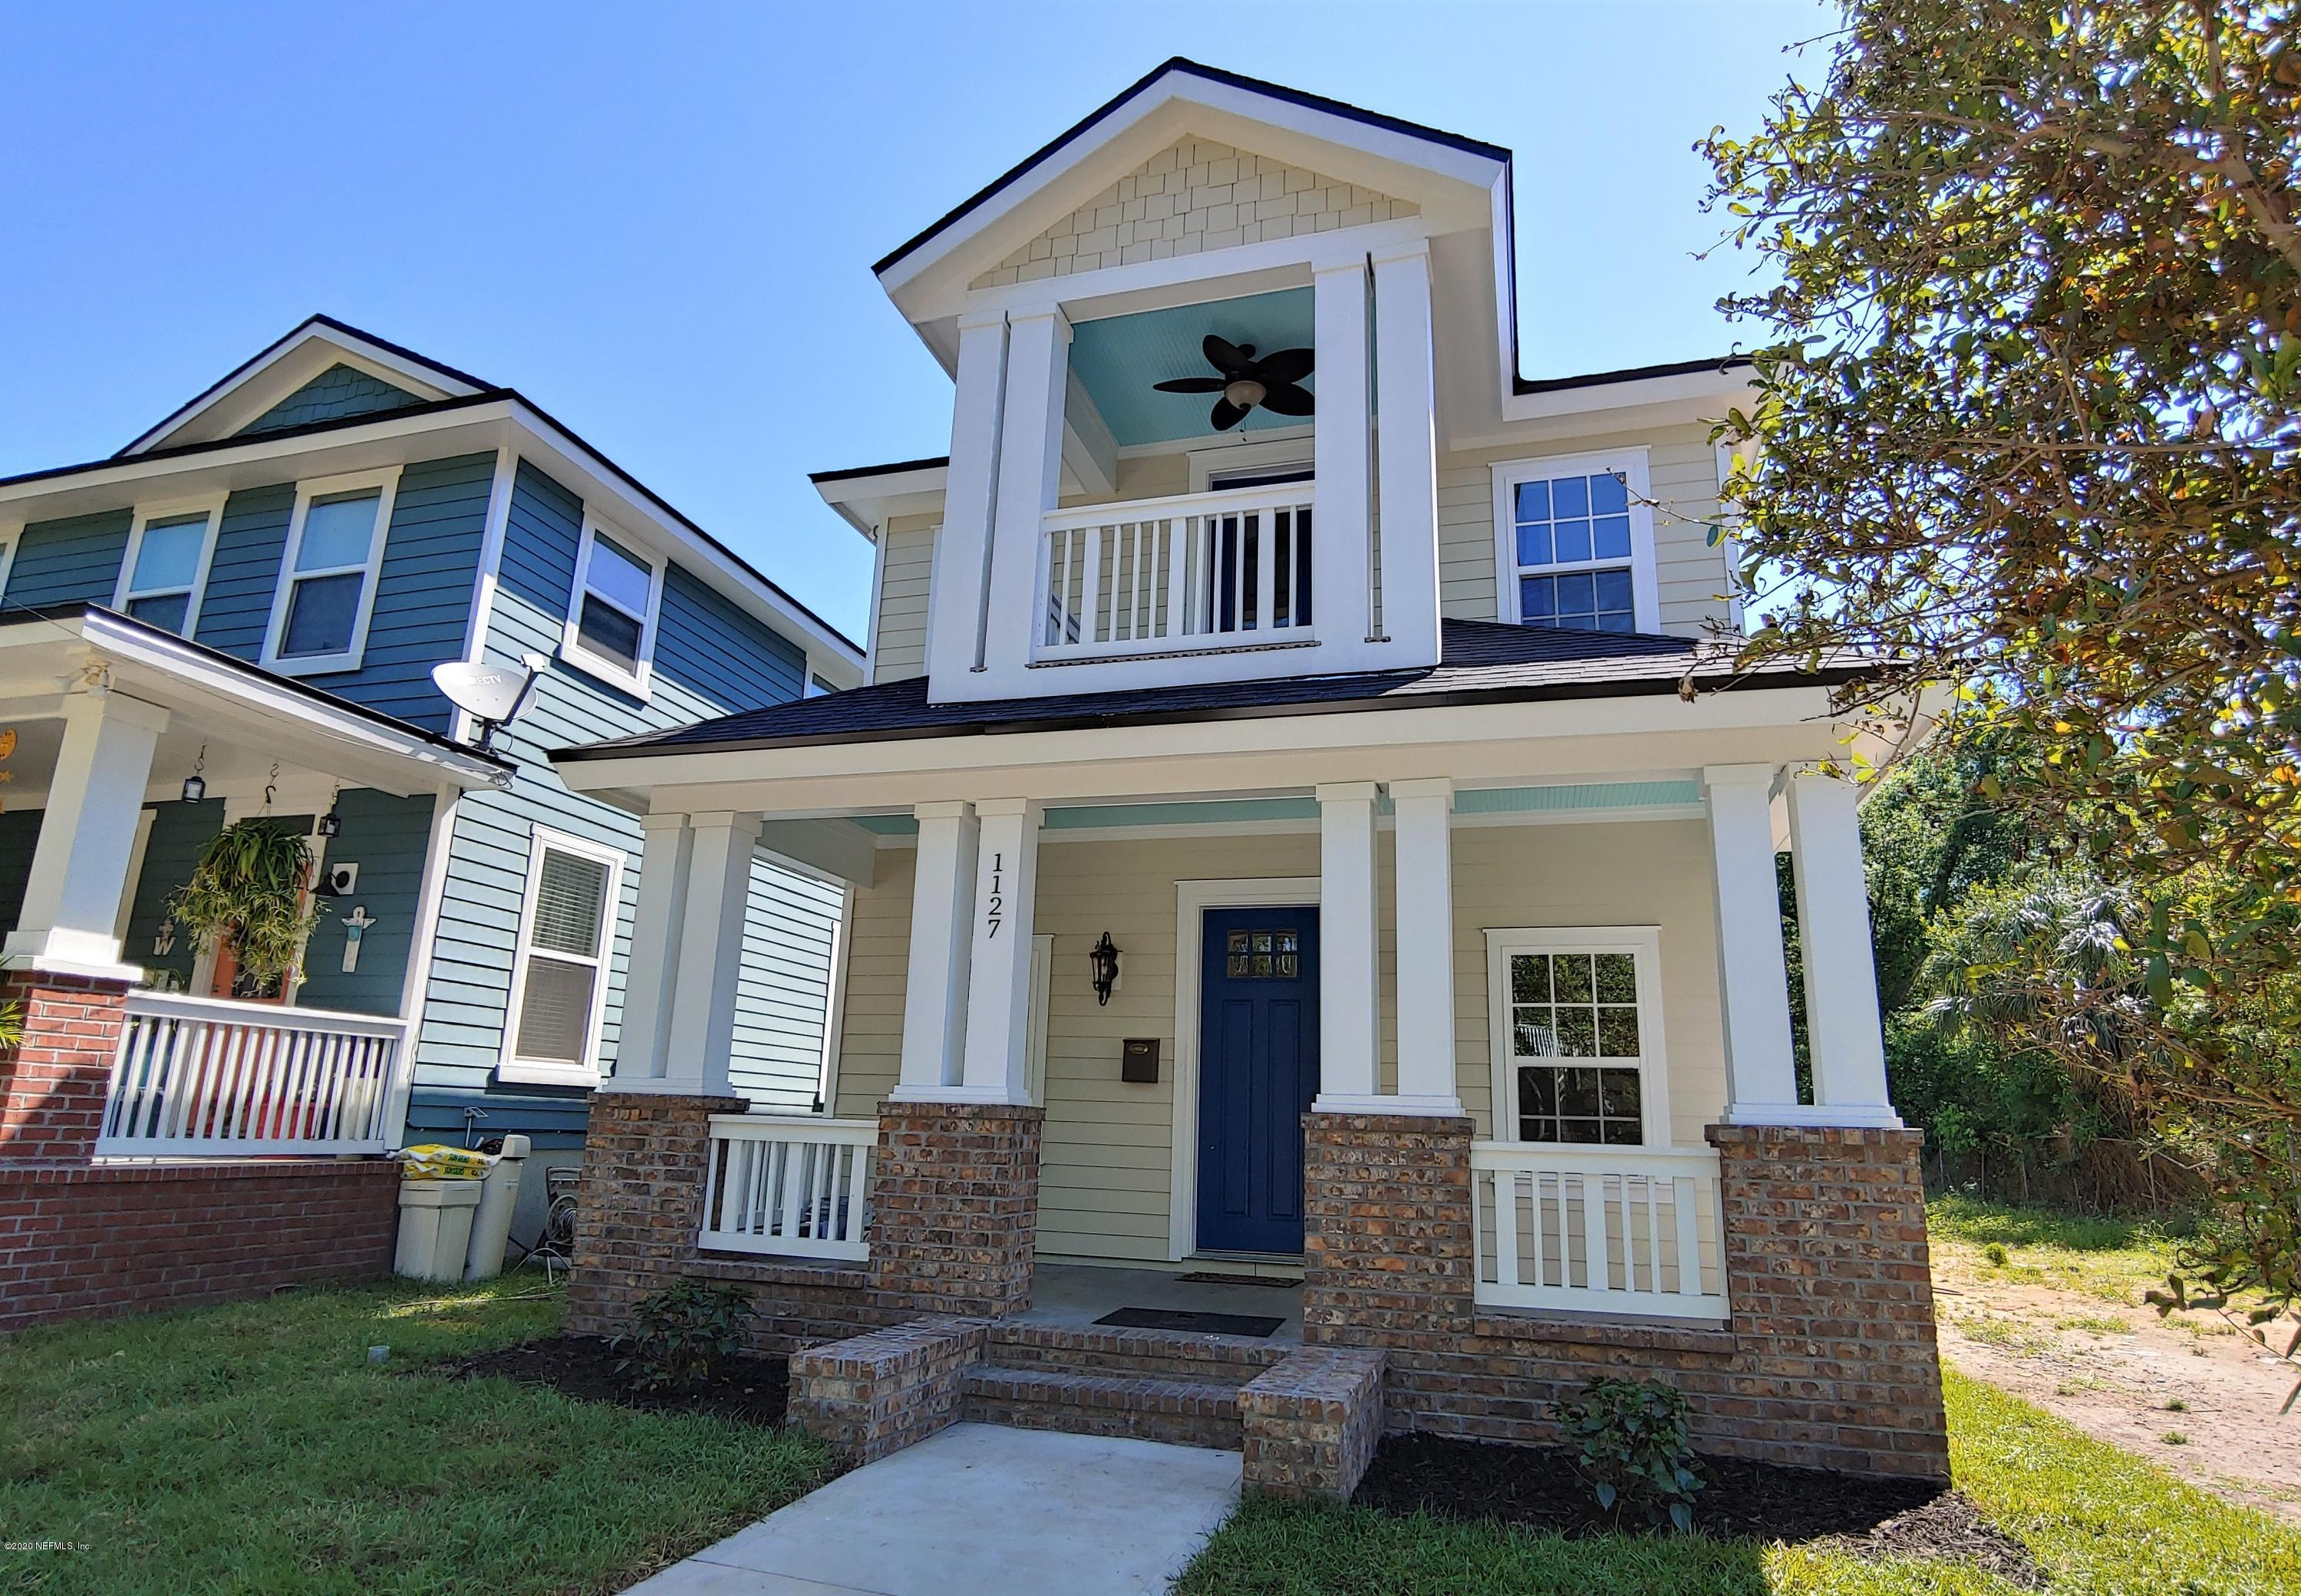 1127 LIBERTY, JACKSONVILLE, FLORIDA 32206, 4 Bedrooms Bedrooms, ,3 BathroomsBathrooms,Residential,For sale,LIBERTY,1034716